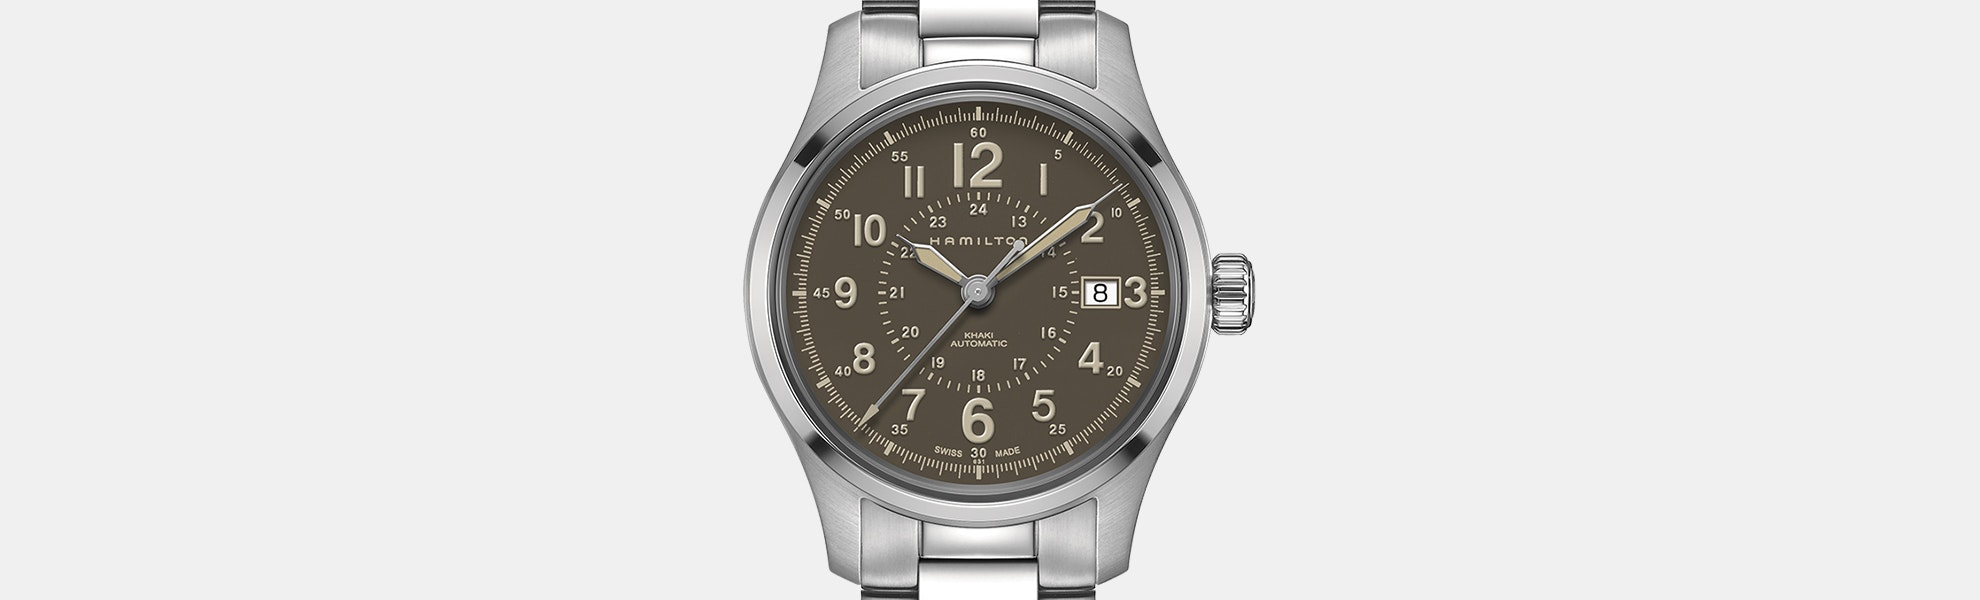 Hamilton Khaki Field Automatic Watch